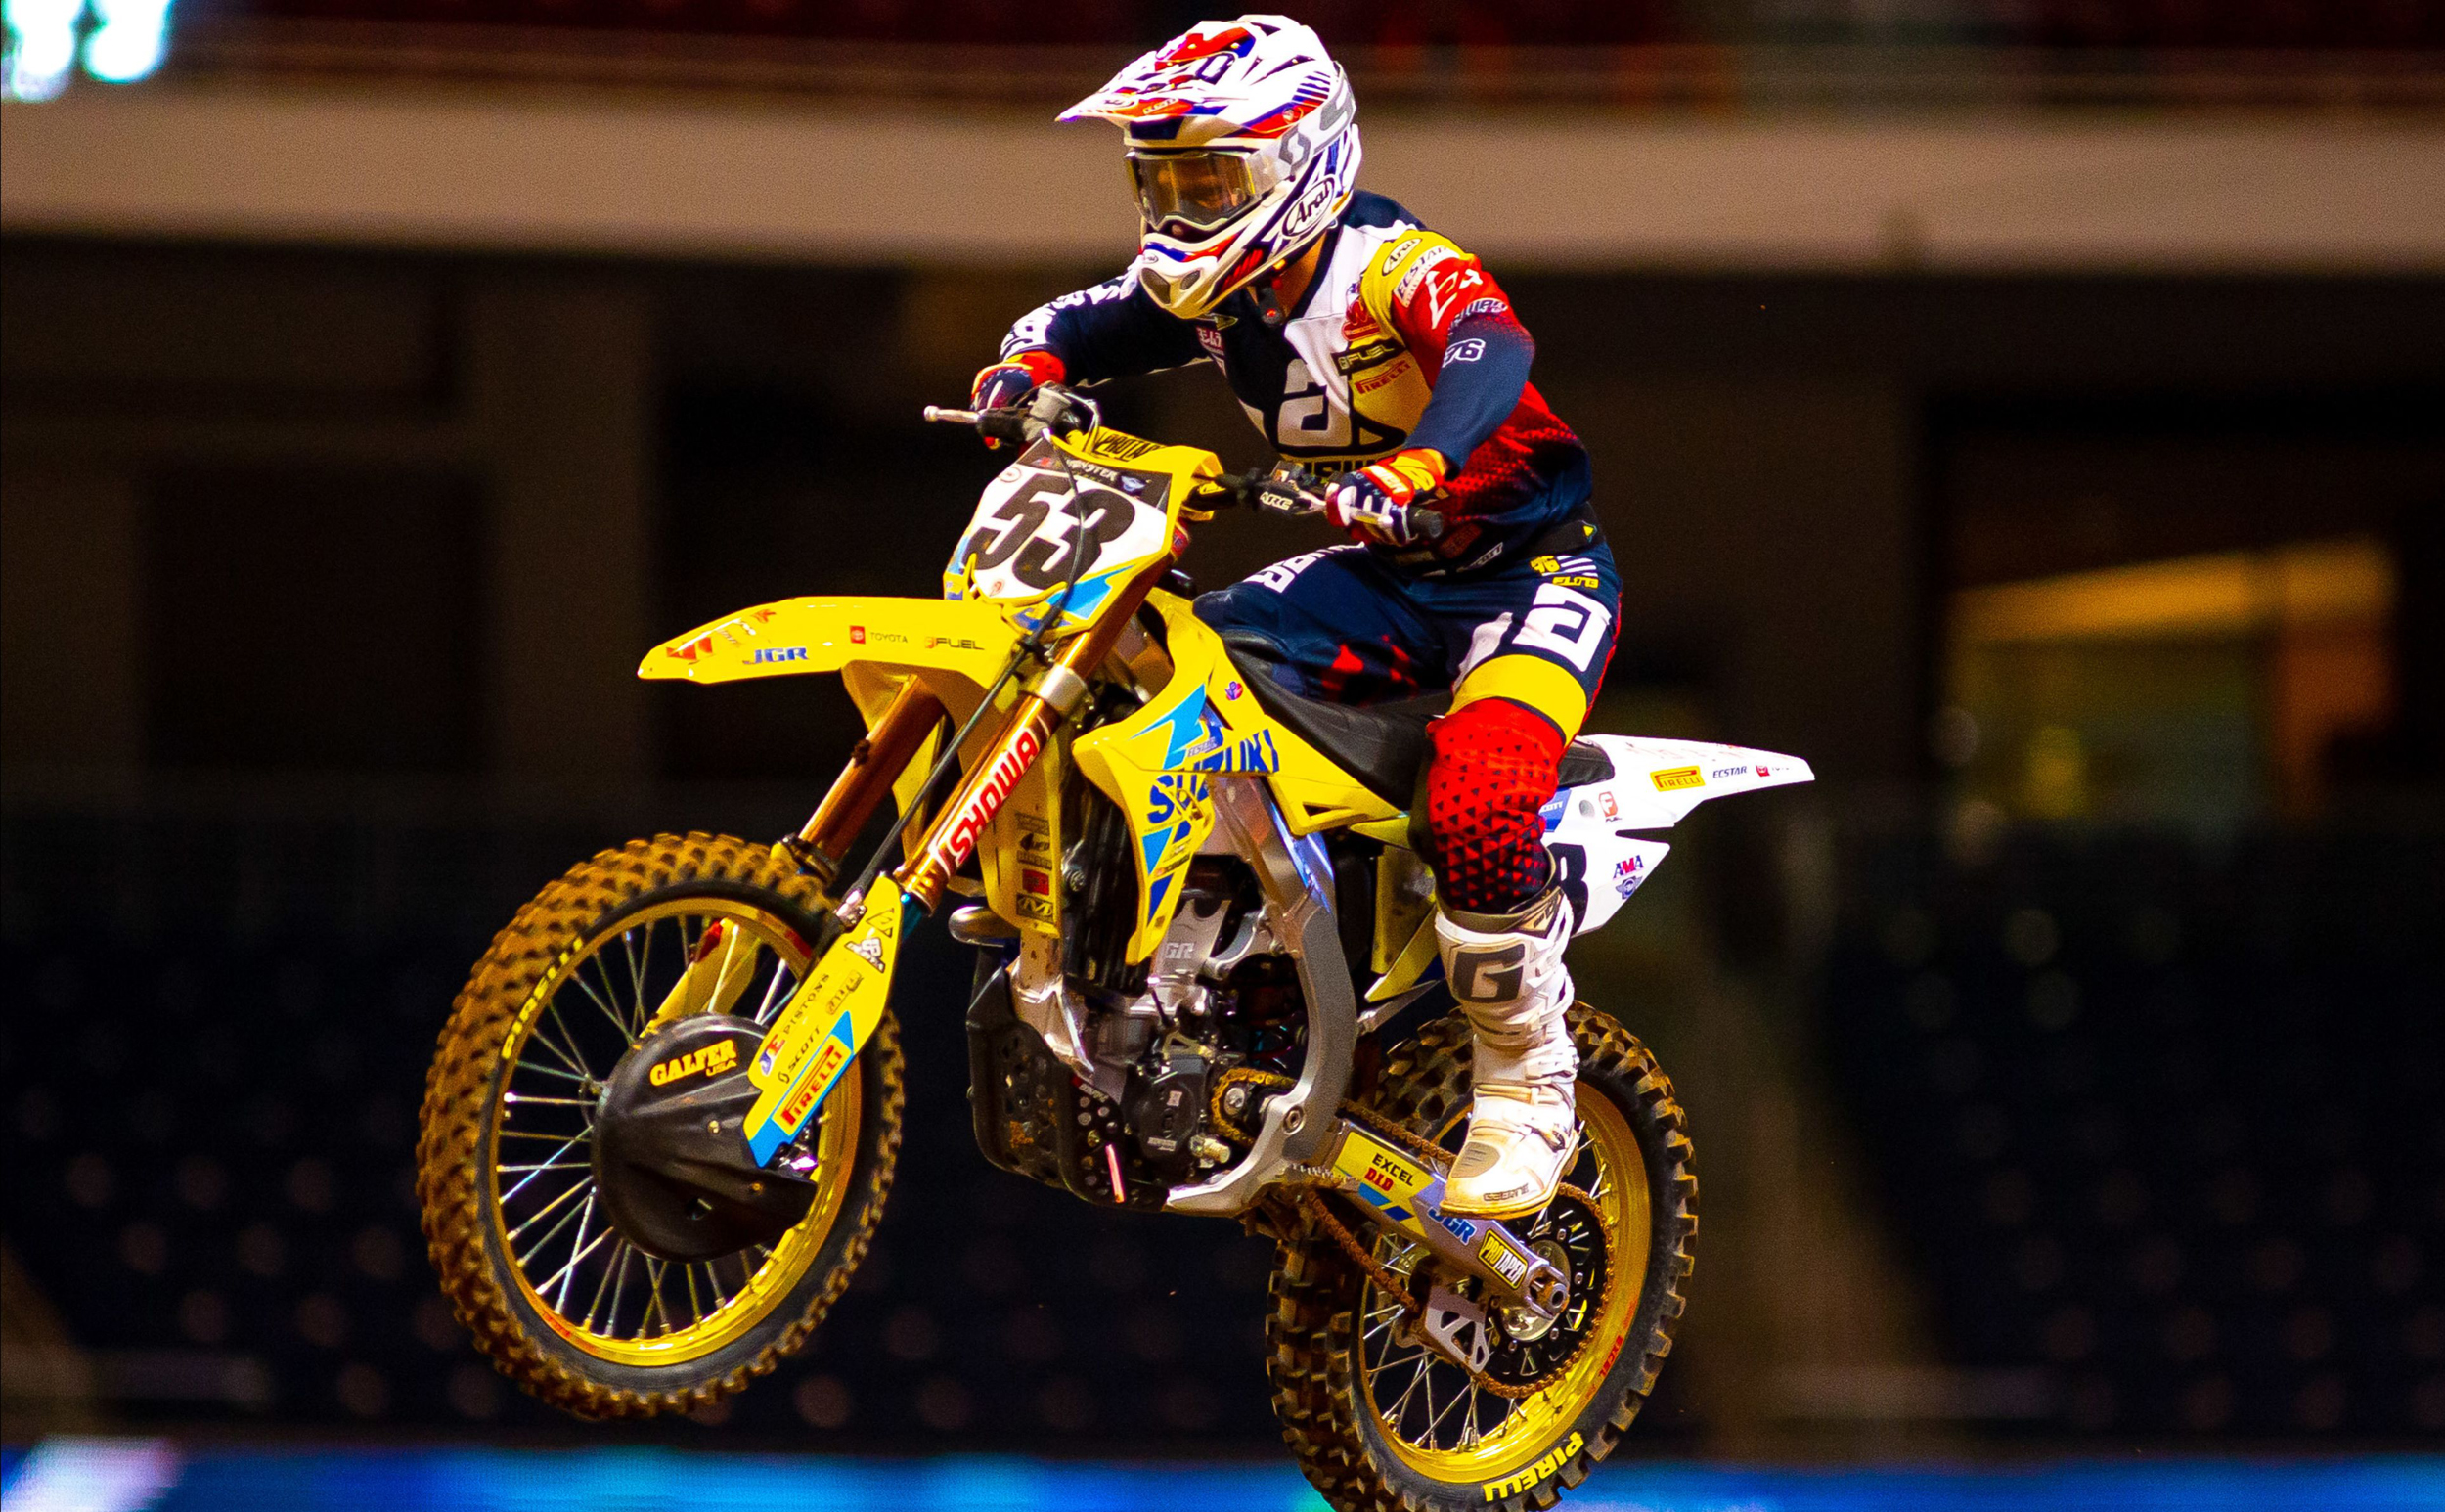 Fredrik Noren (#53) rode strong on his RM-Z450 until a foot injury took him out of the race[3]